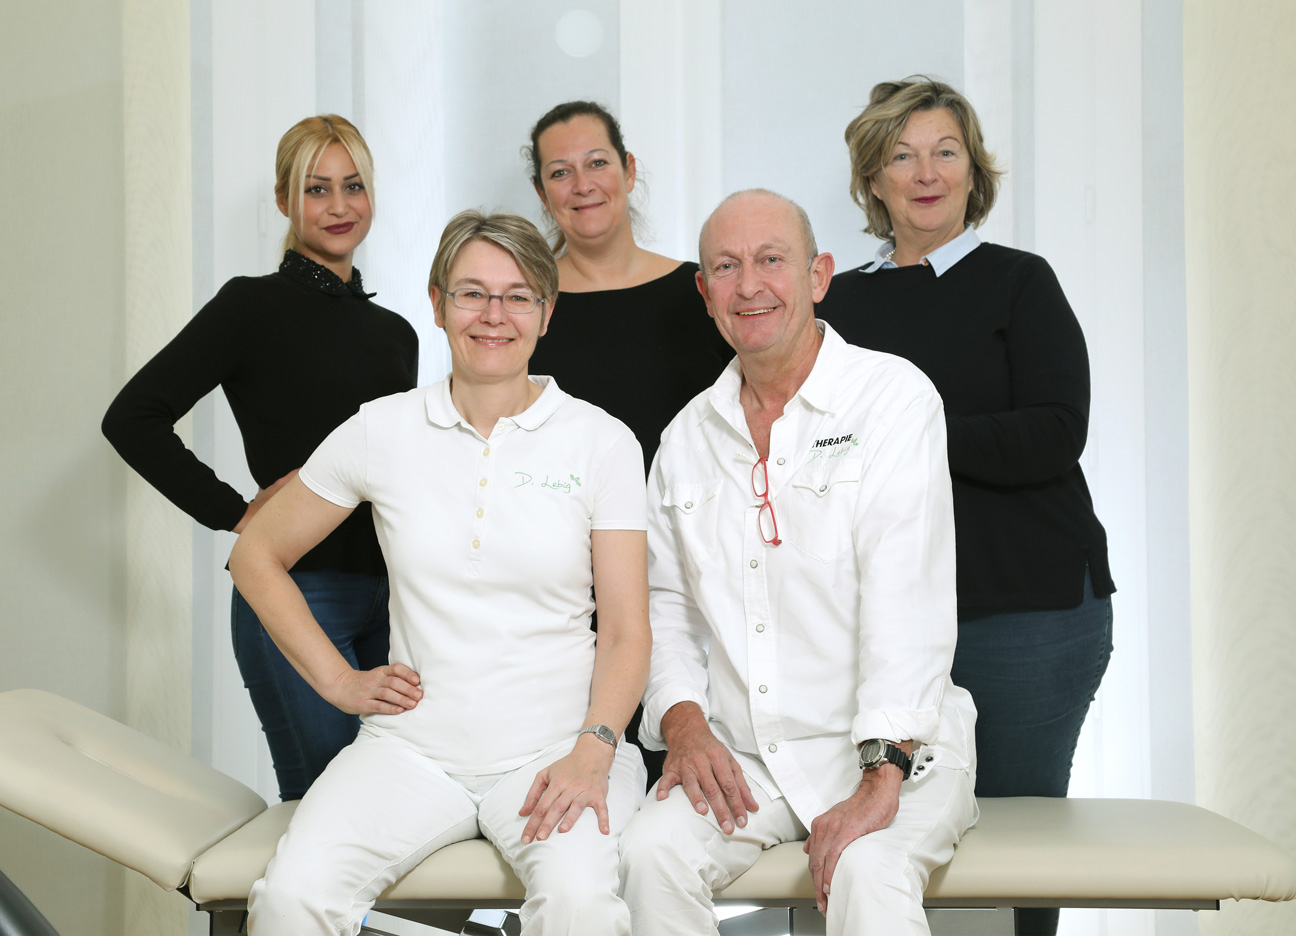 Team Physiotherapie Dieter Lebig Krefeld